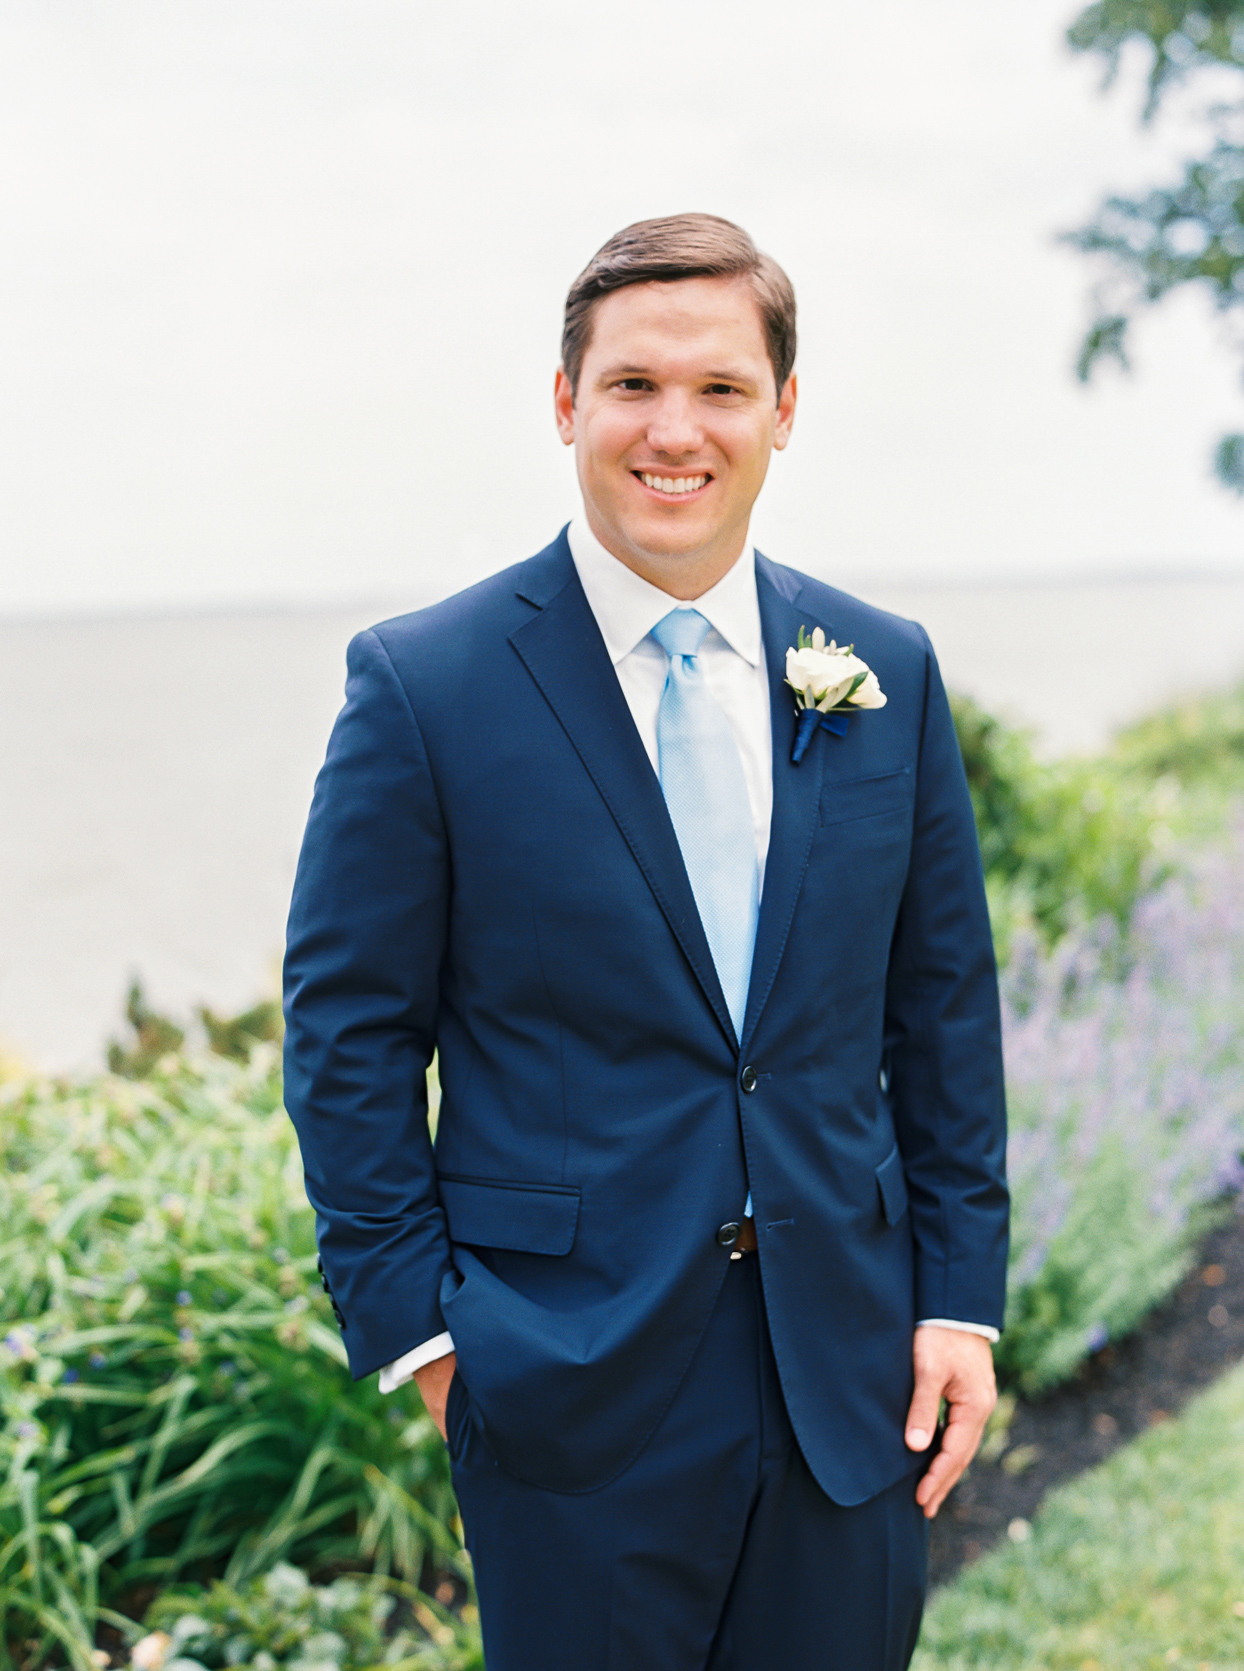 groom wearing navy blue suit with light blue tie and boutonniere